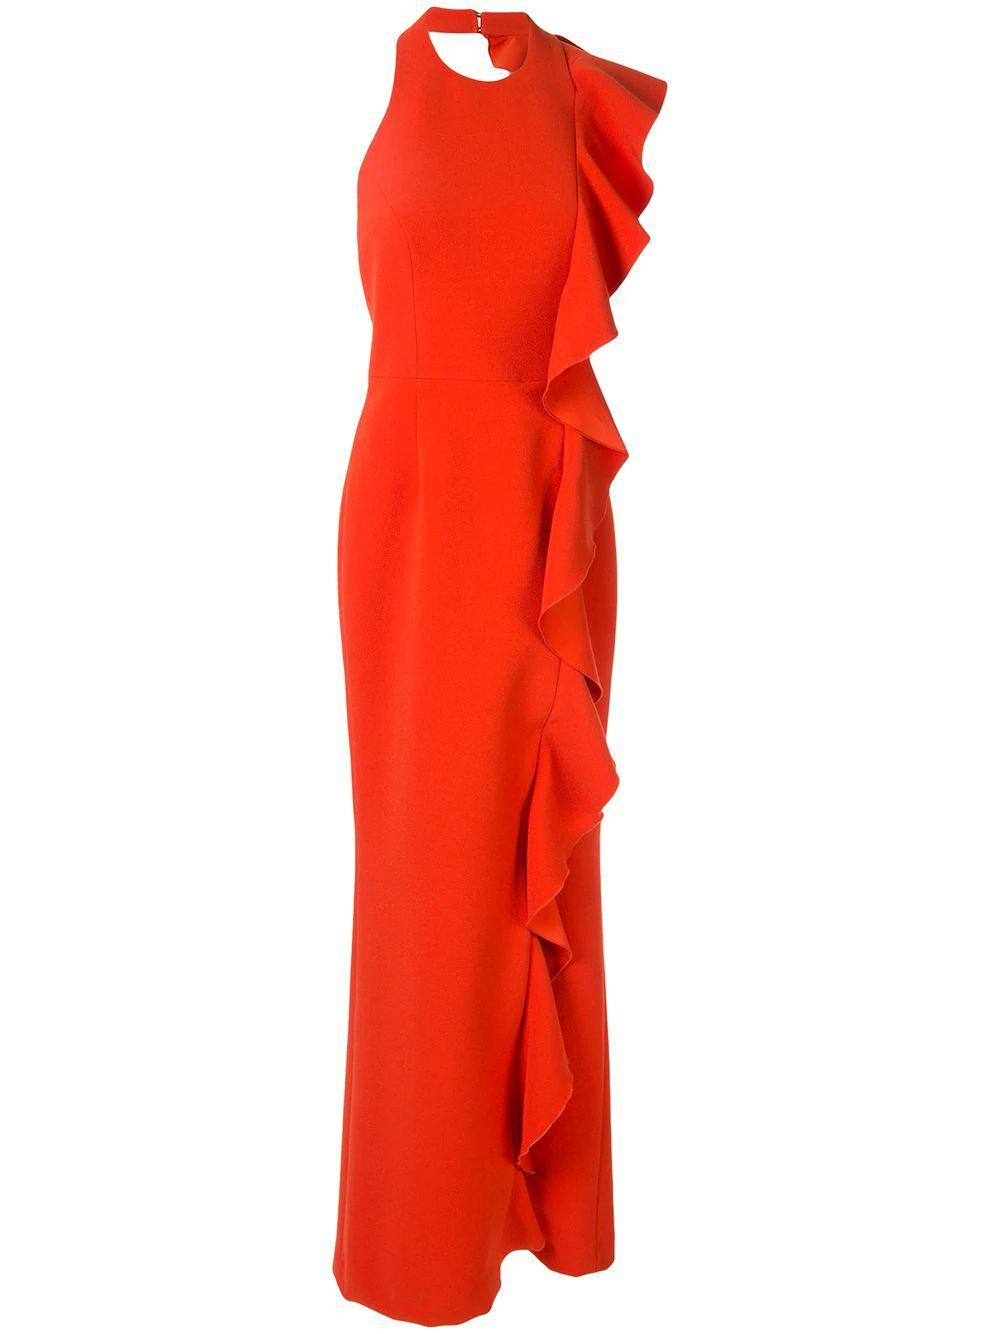 Galerie Side Ruffle Gown